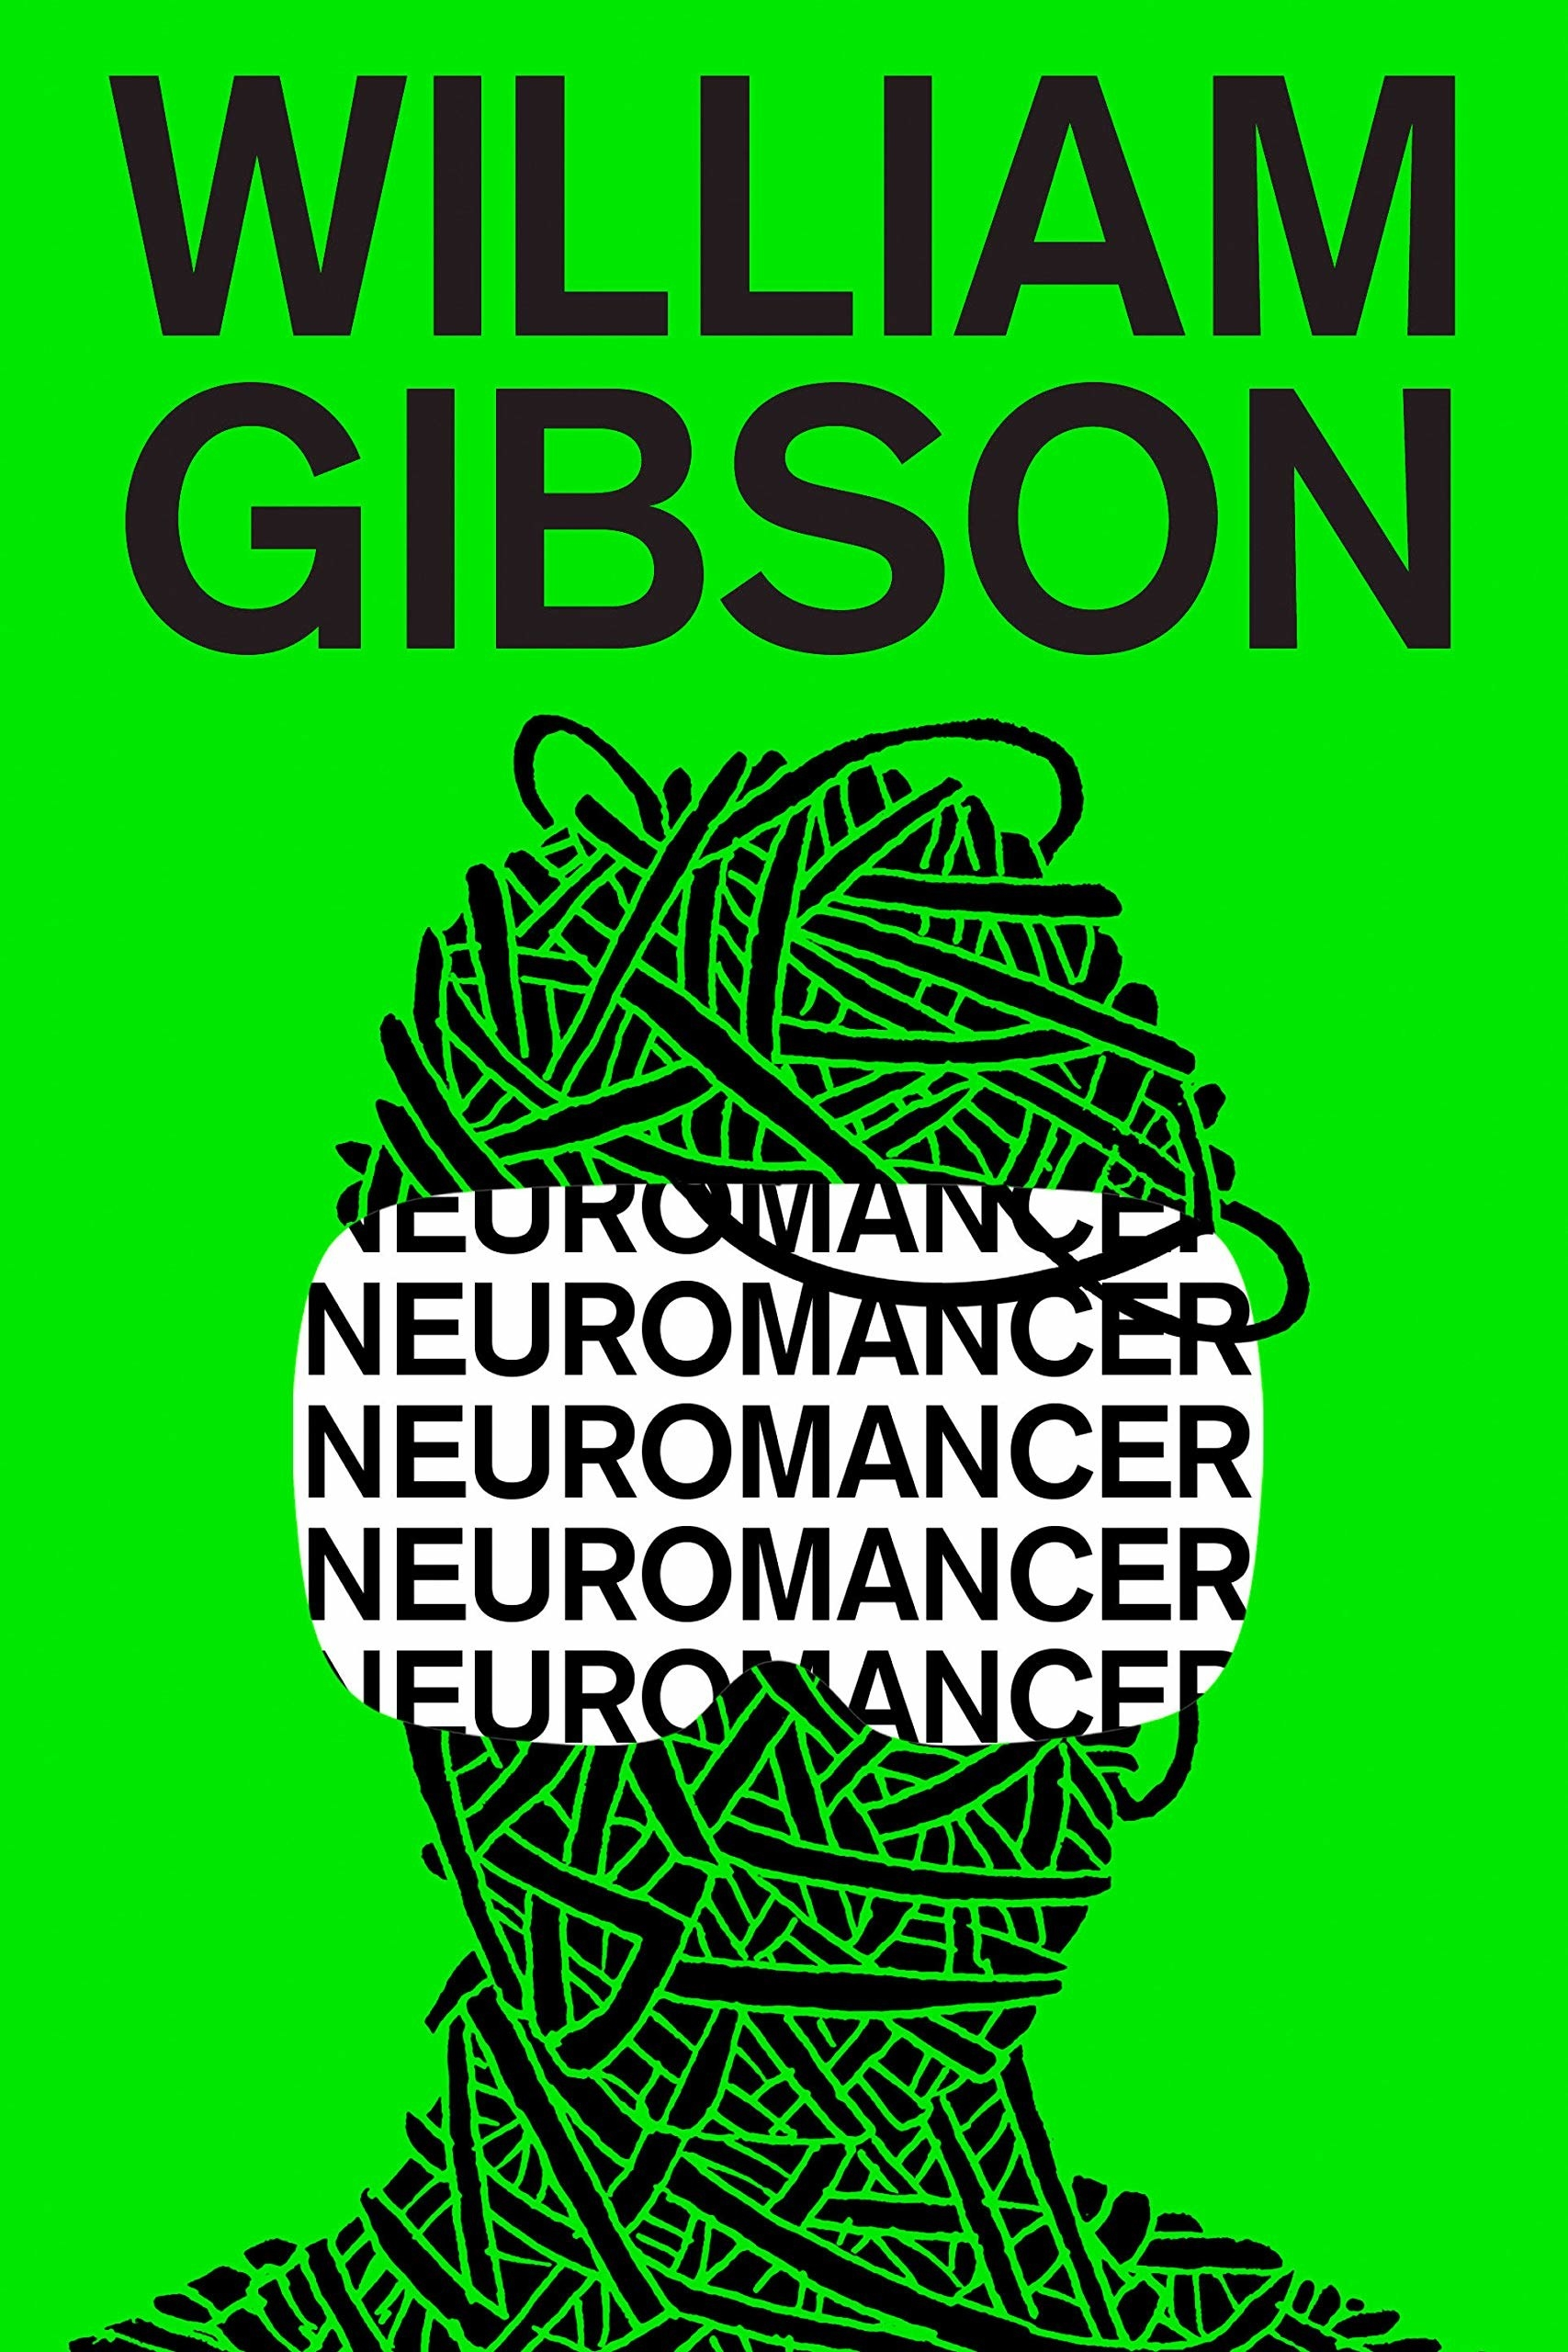 The cover of Neuromancer